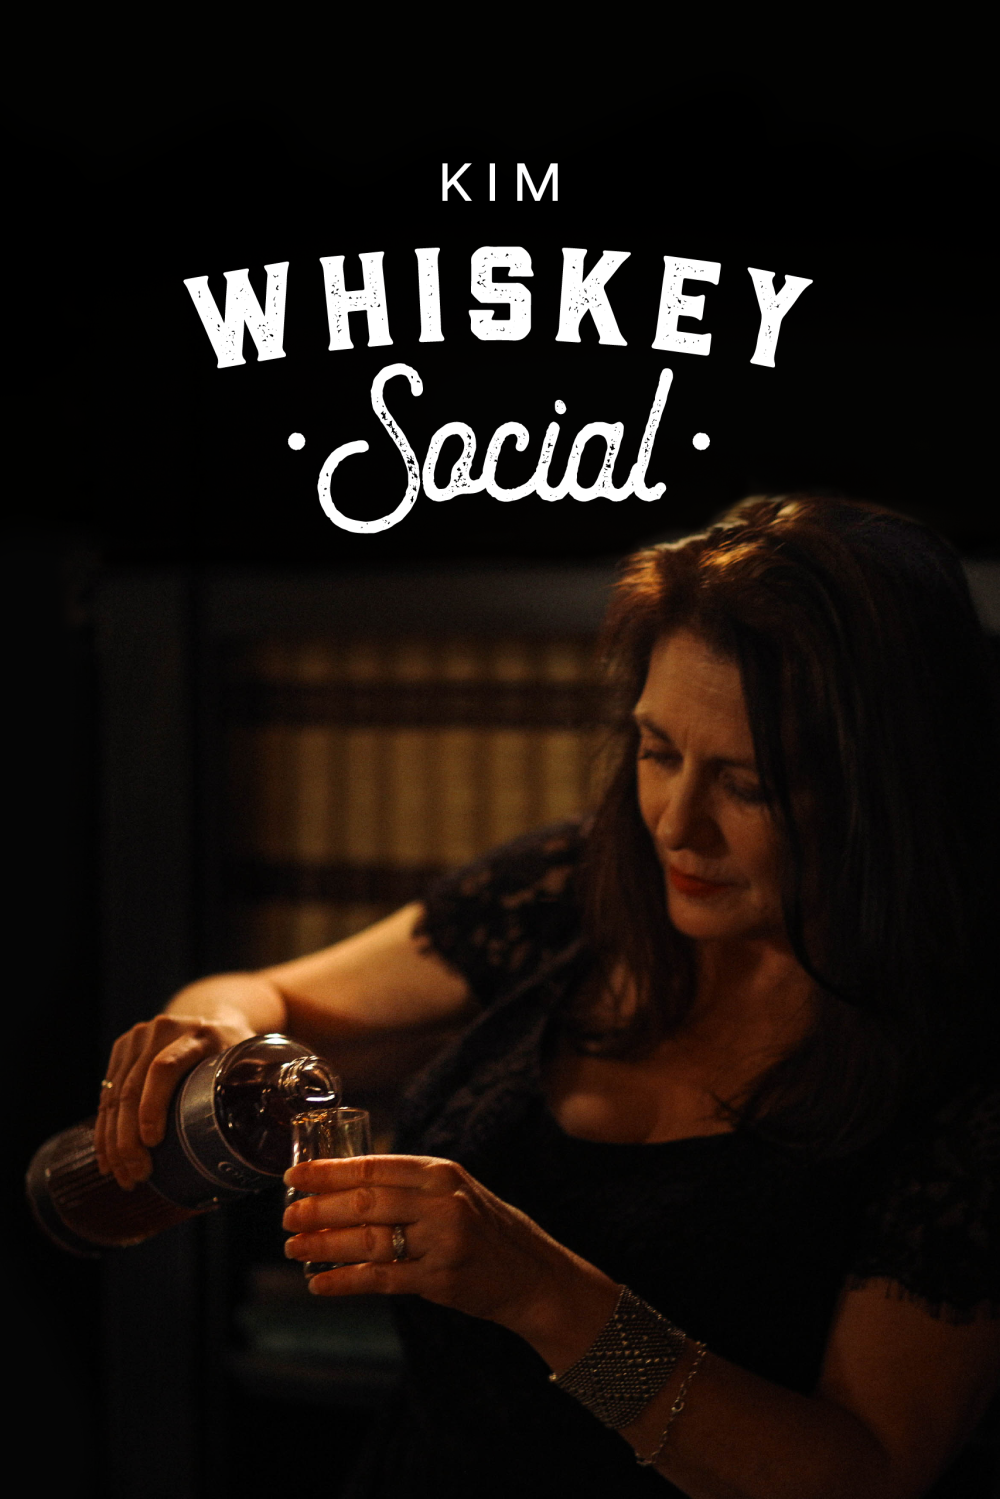 Kim Whiskey Social.png